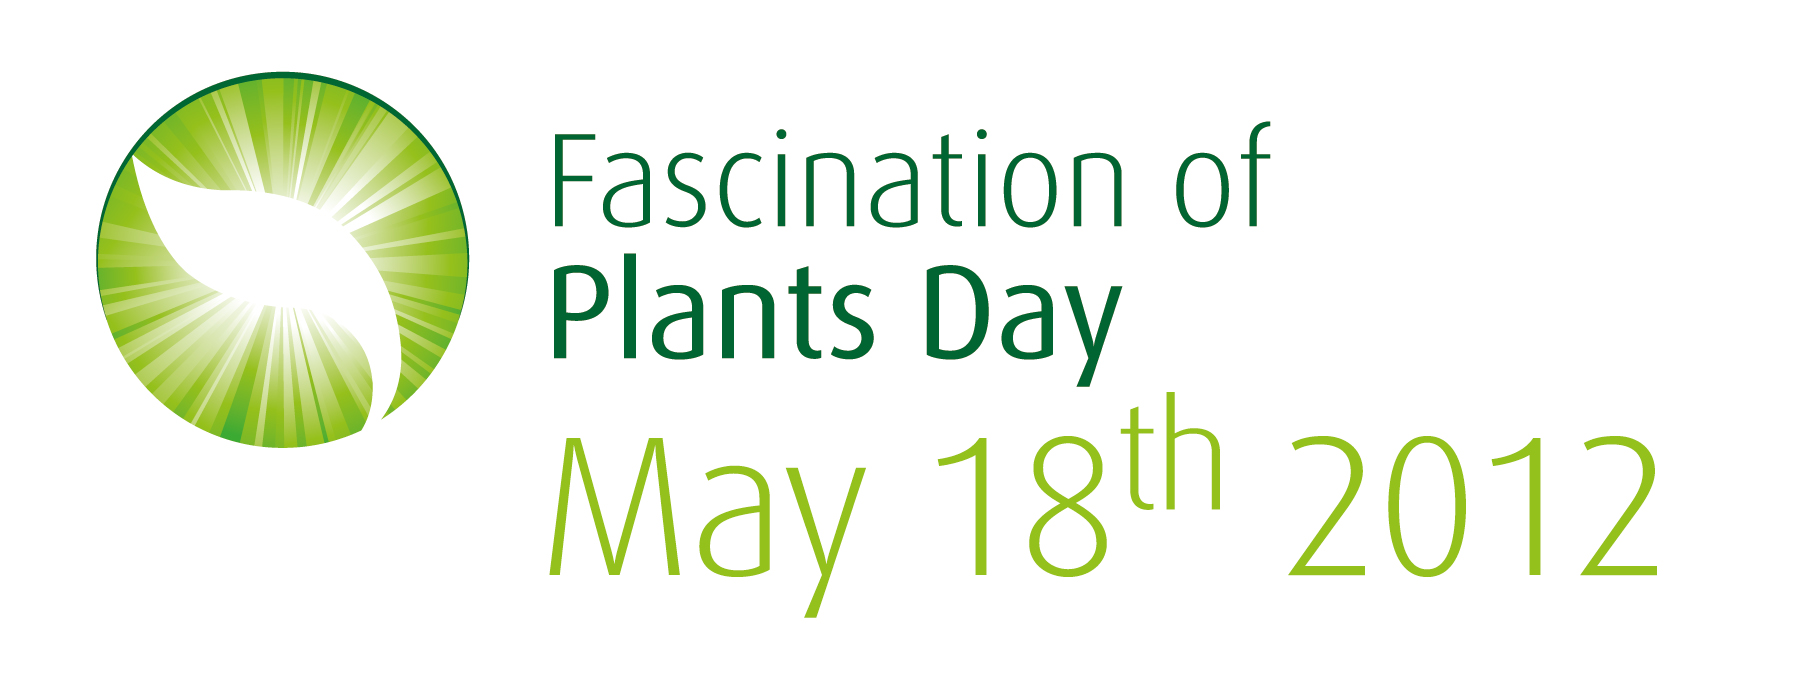 plants day 2012 logo